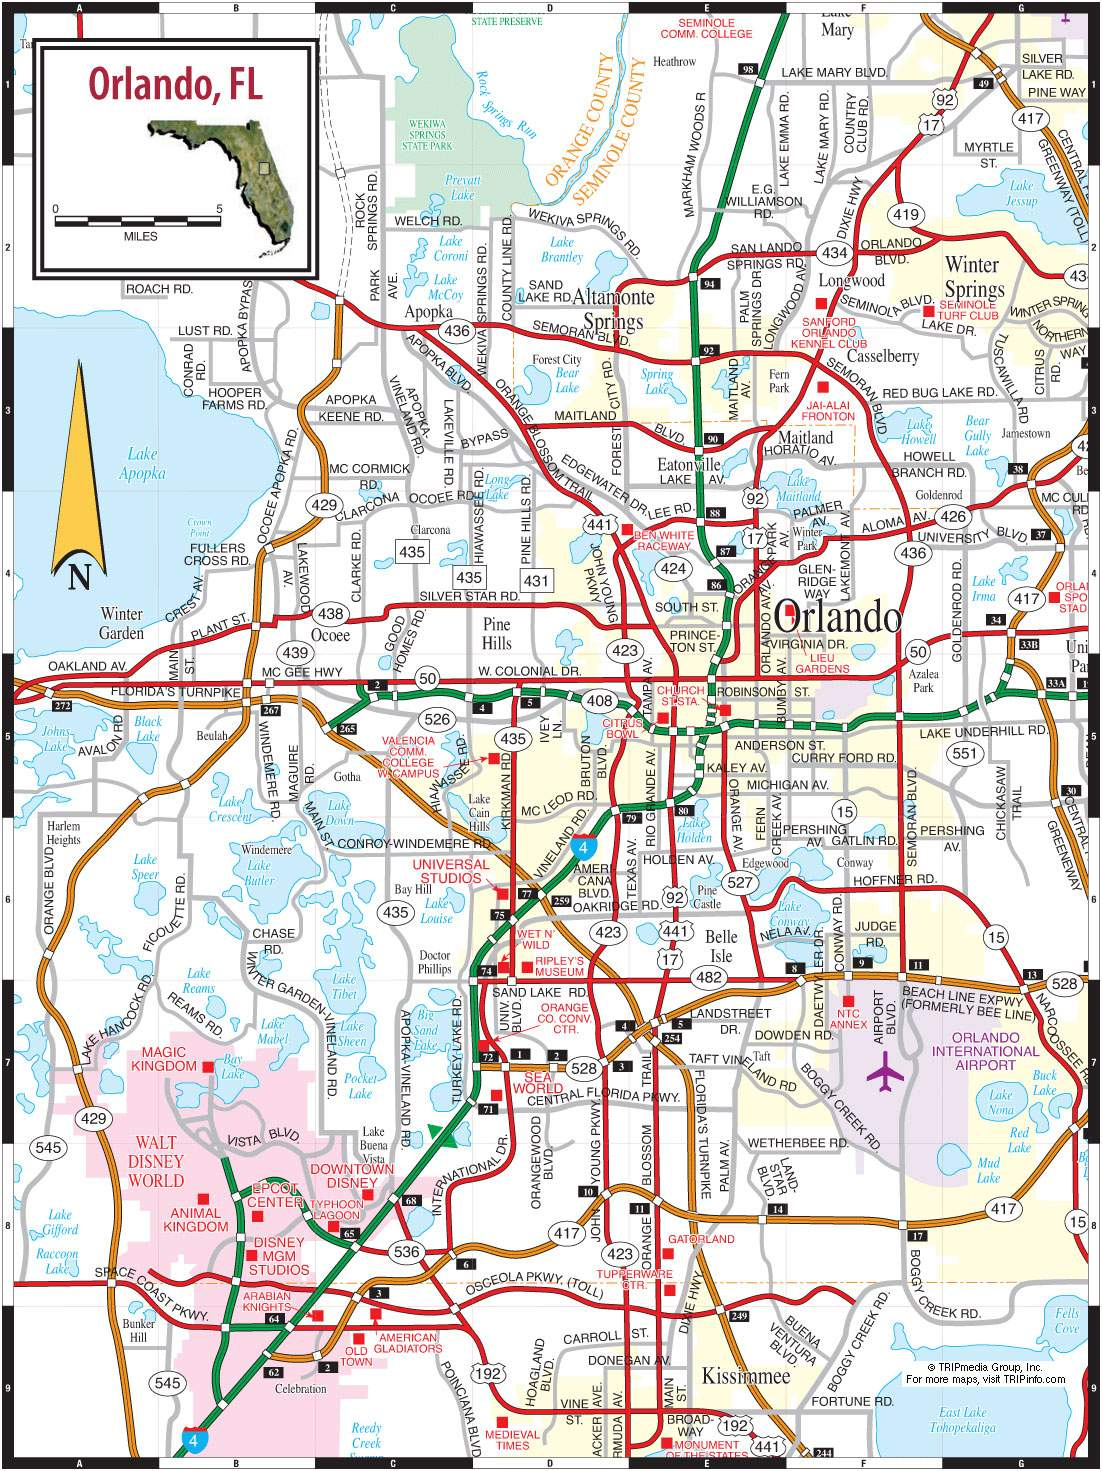 Large Orlando Maps For Free Download And Print | High-Resolution And - Road Map Of Orlando Florida